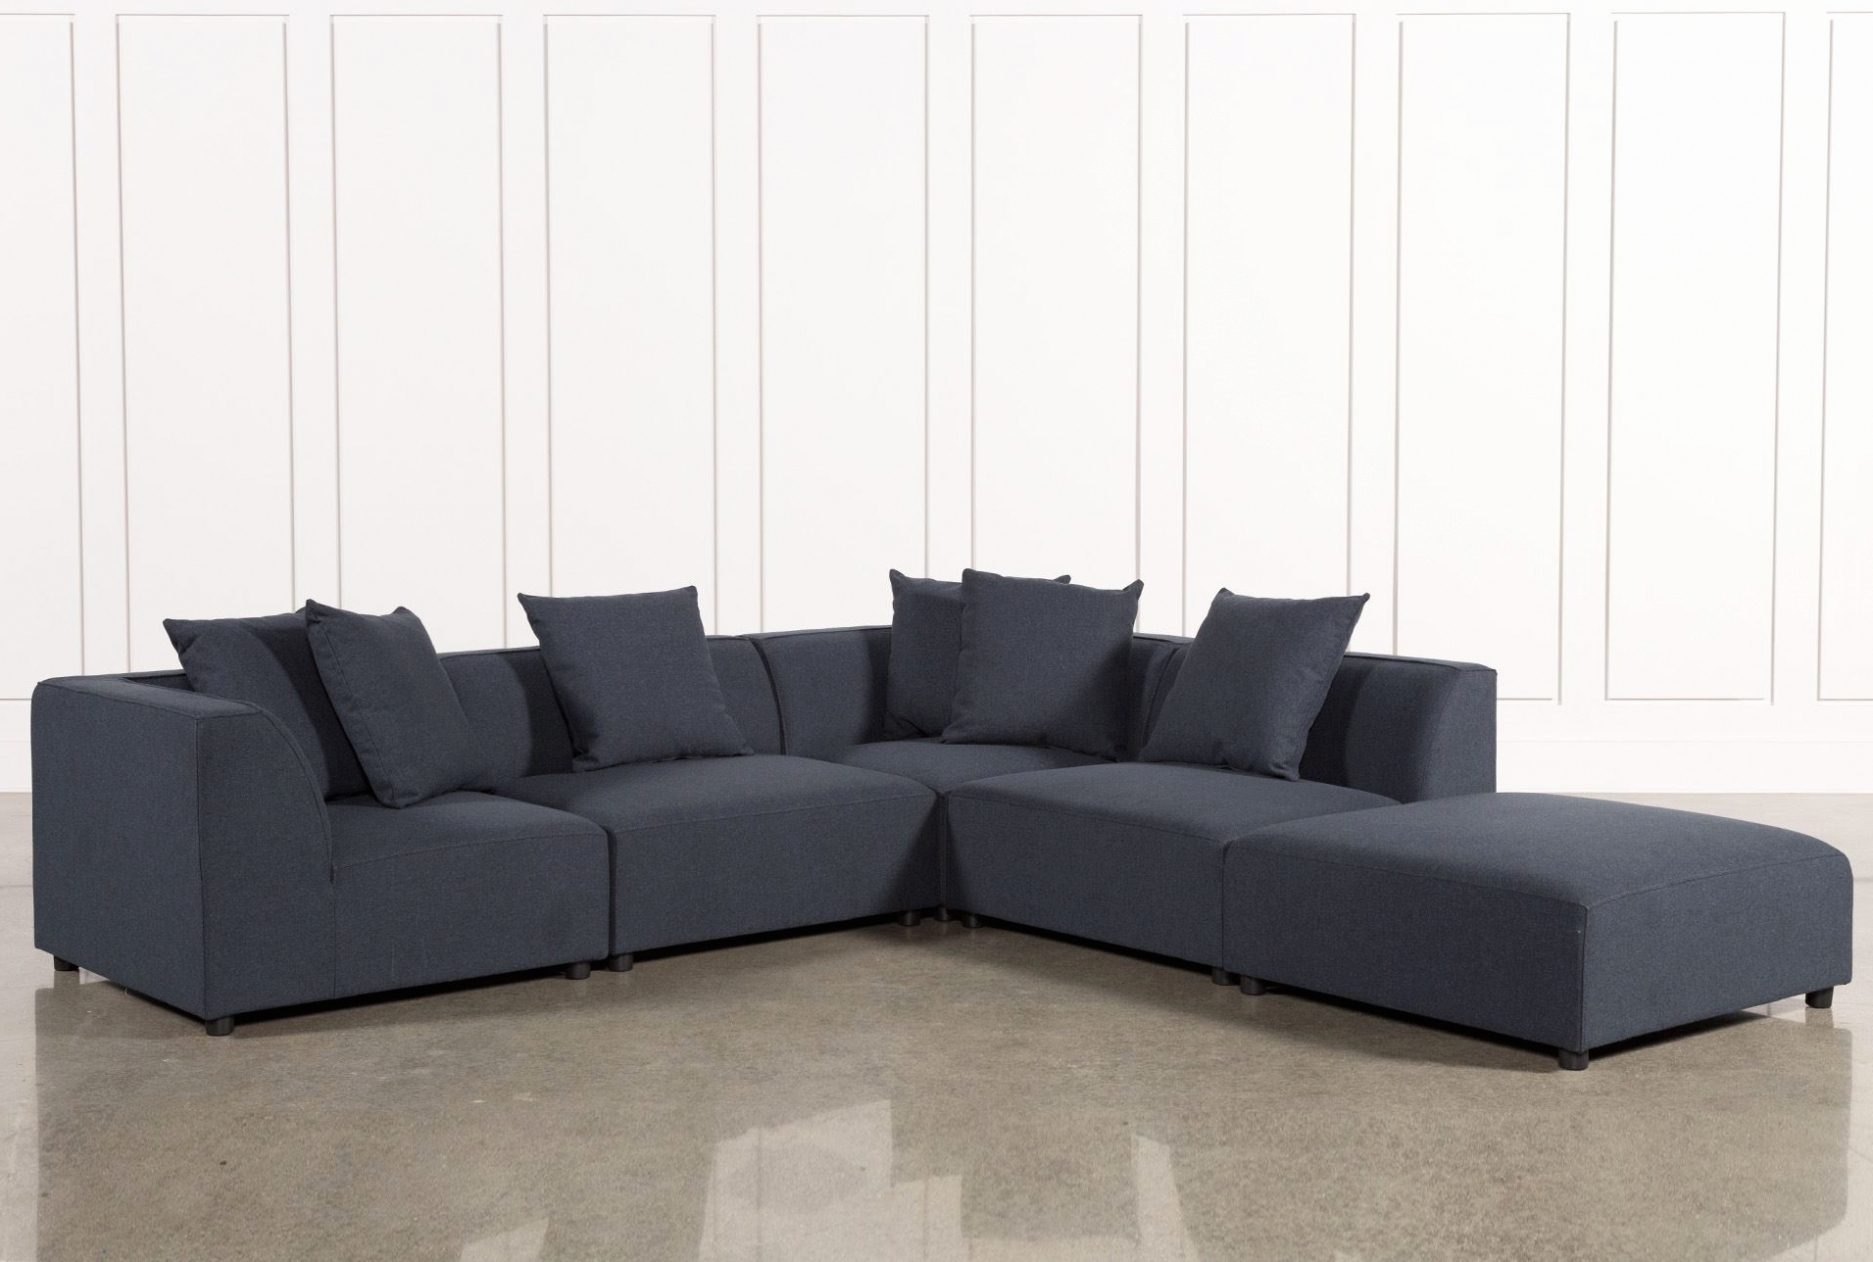 Living Spaces Sectional Sofas For Recent Furniture: Lovely 5 Piece Sectional Sofa With Chaise  (View 7 of 15)